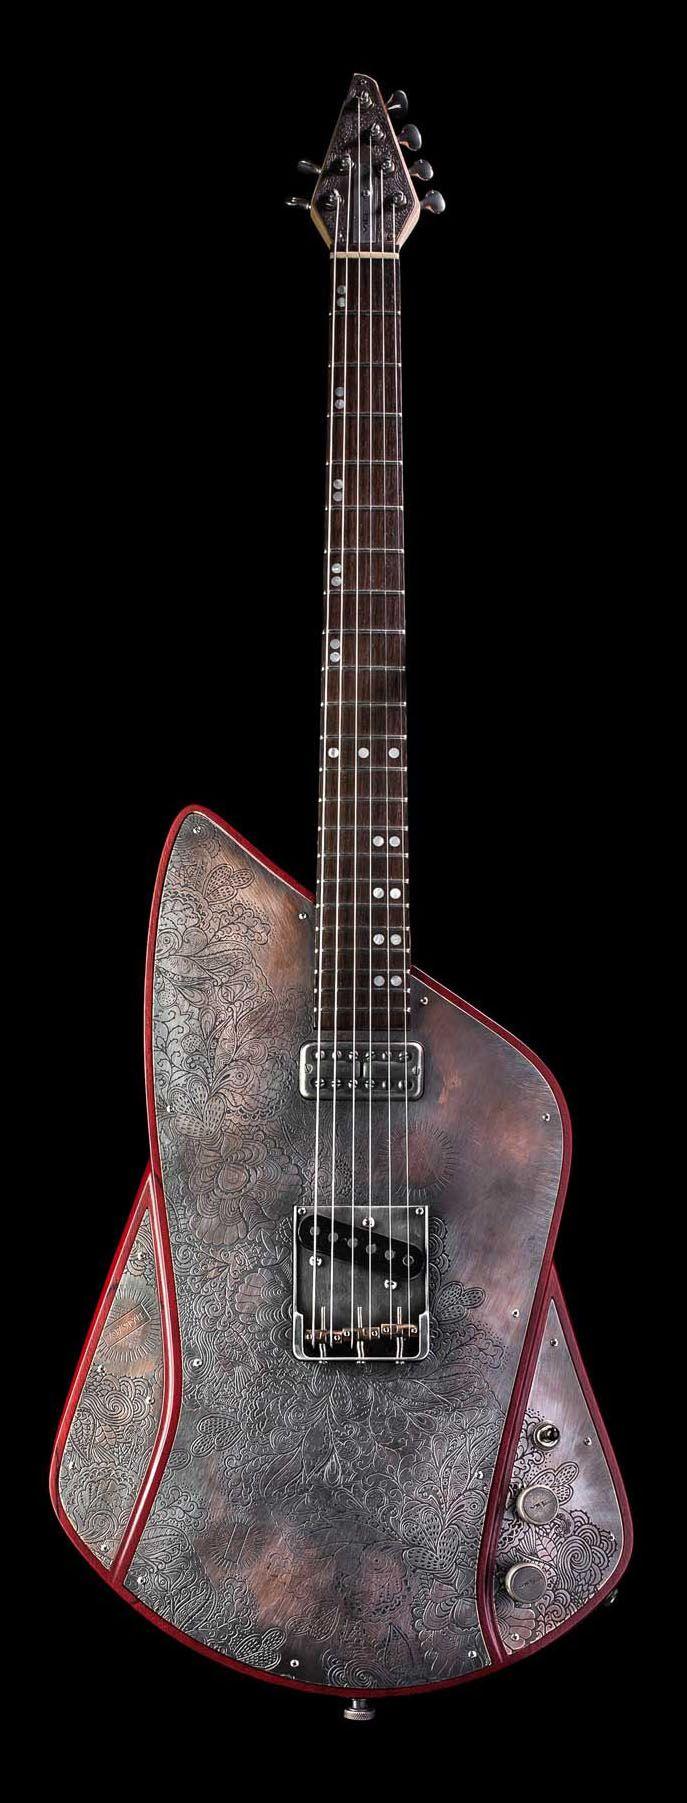 Vice 707 Vice Guitars Is Located In Munich Germany The Steel Top Guitar 707 Features An Engraved Three Piece Copper T Guitar Gadgets Unique Guitars Guitar